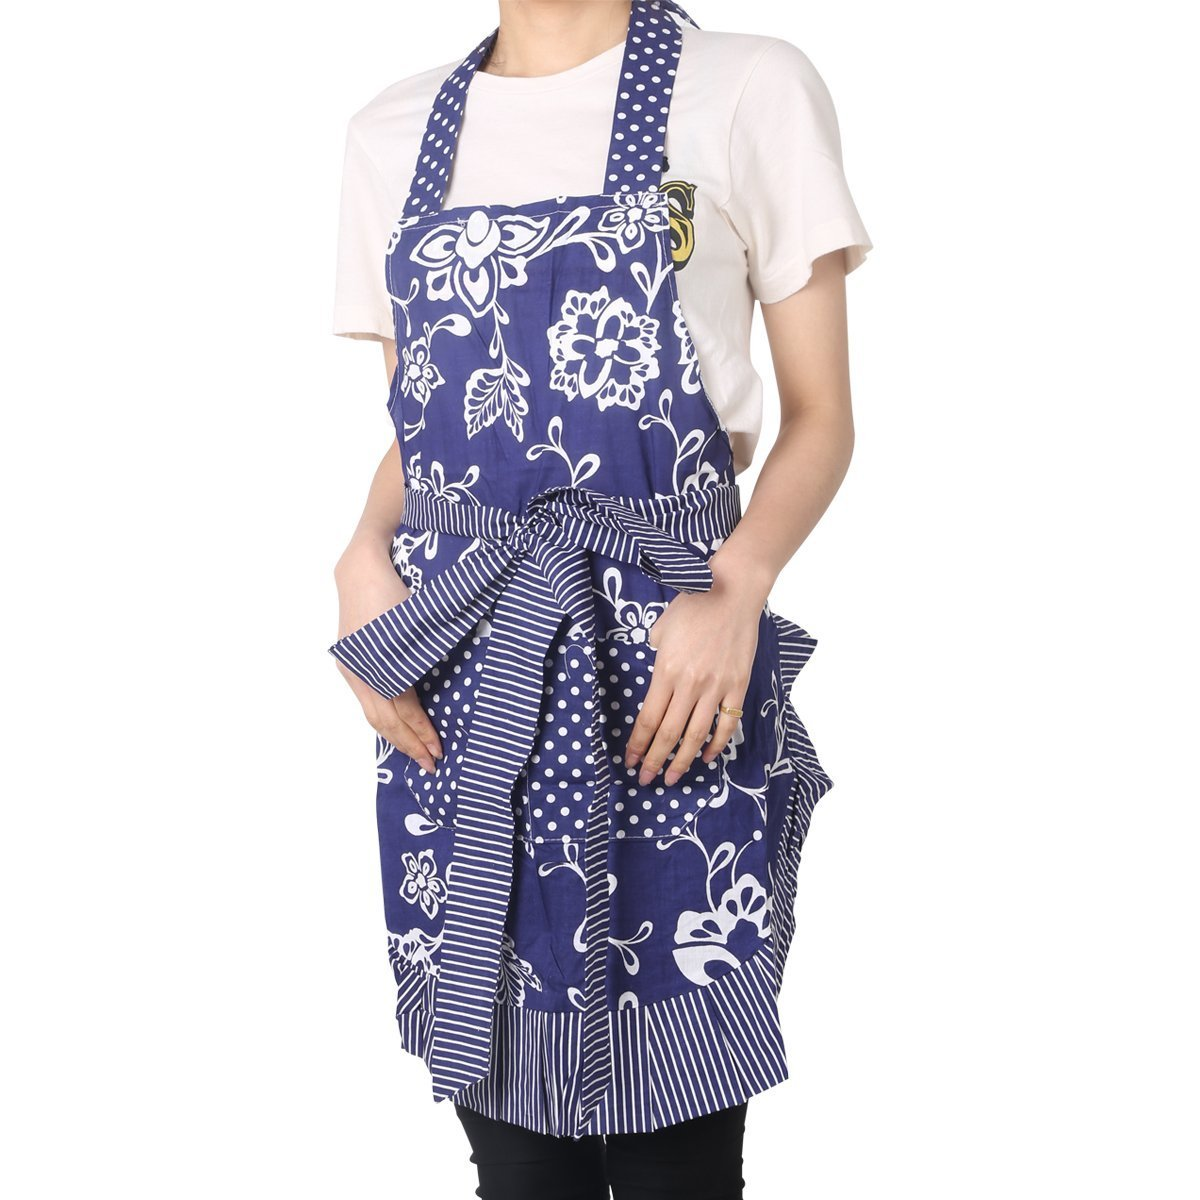 Floral Apron for Women with Pockets, Extra Long Ties, G2PLUS Vintage Apron, Perfect for Kitchen Cooking, Baking and Gardening, 29 x 21 – inch (Blue) 3